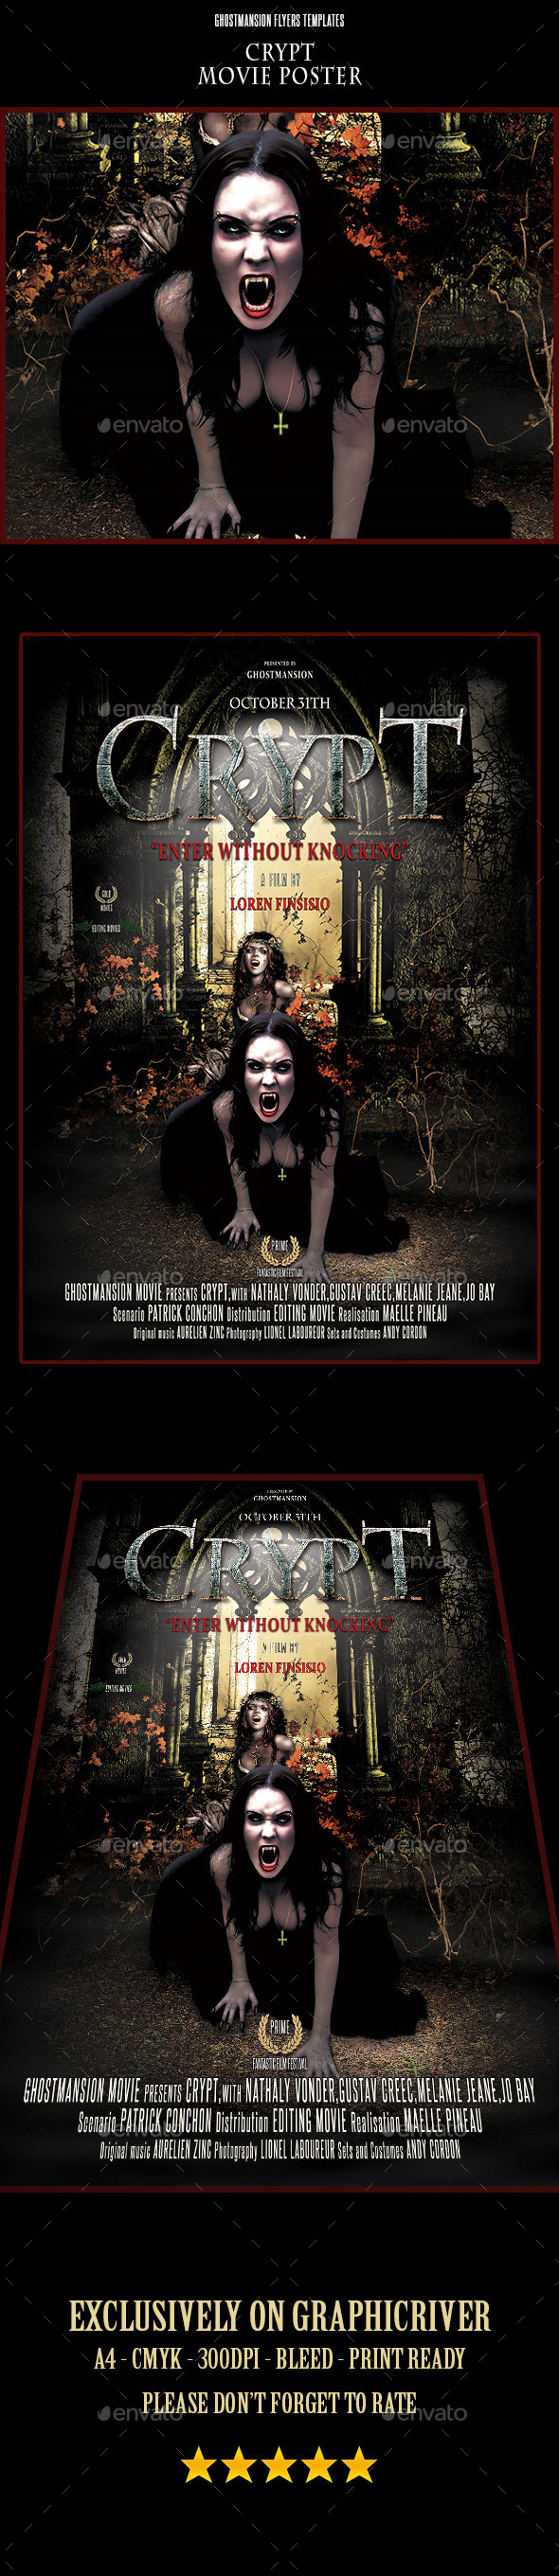 GraphicRiver Crypt Movie Poster 8876334